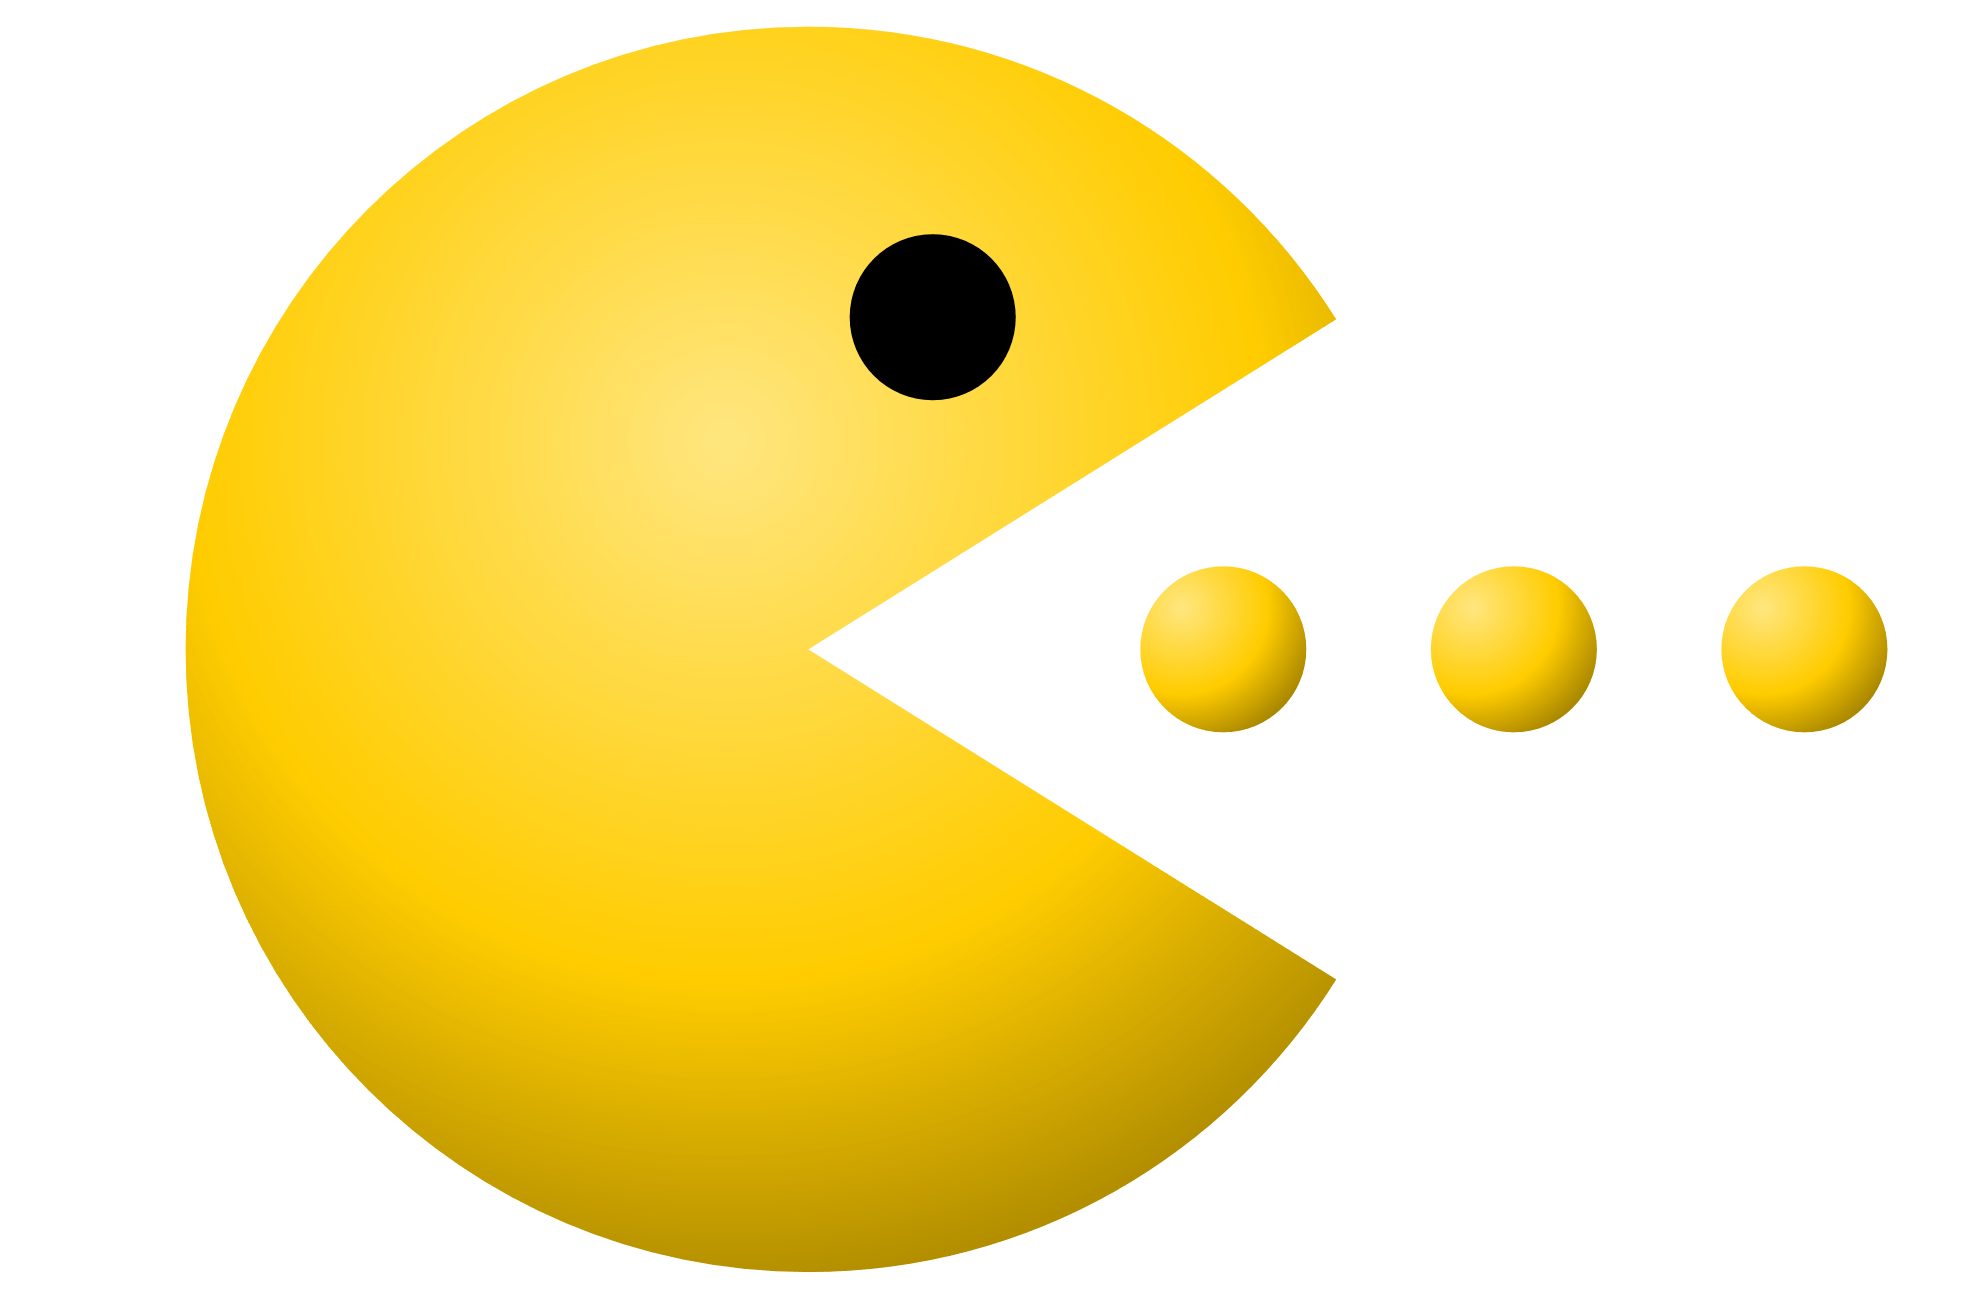 Pac cliparts banner transparent download Pac Man Cliparts - Cliparts Zone banner transparent download